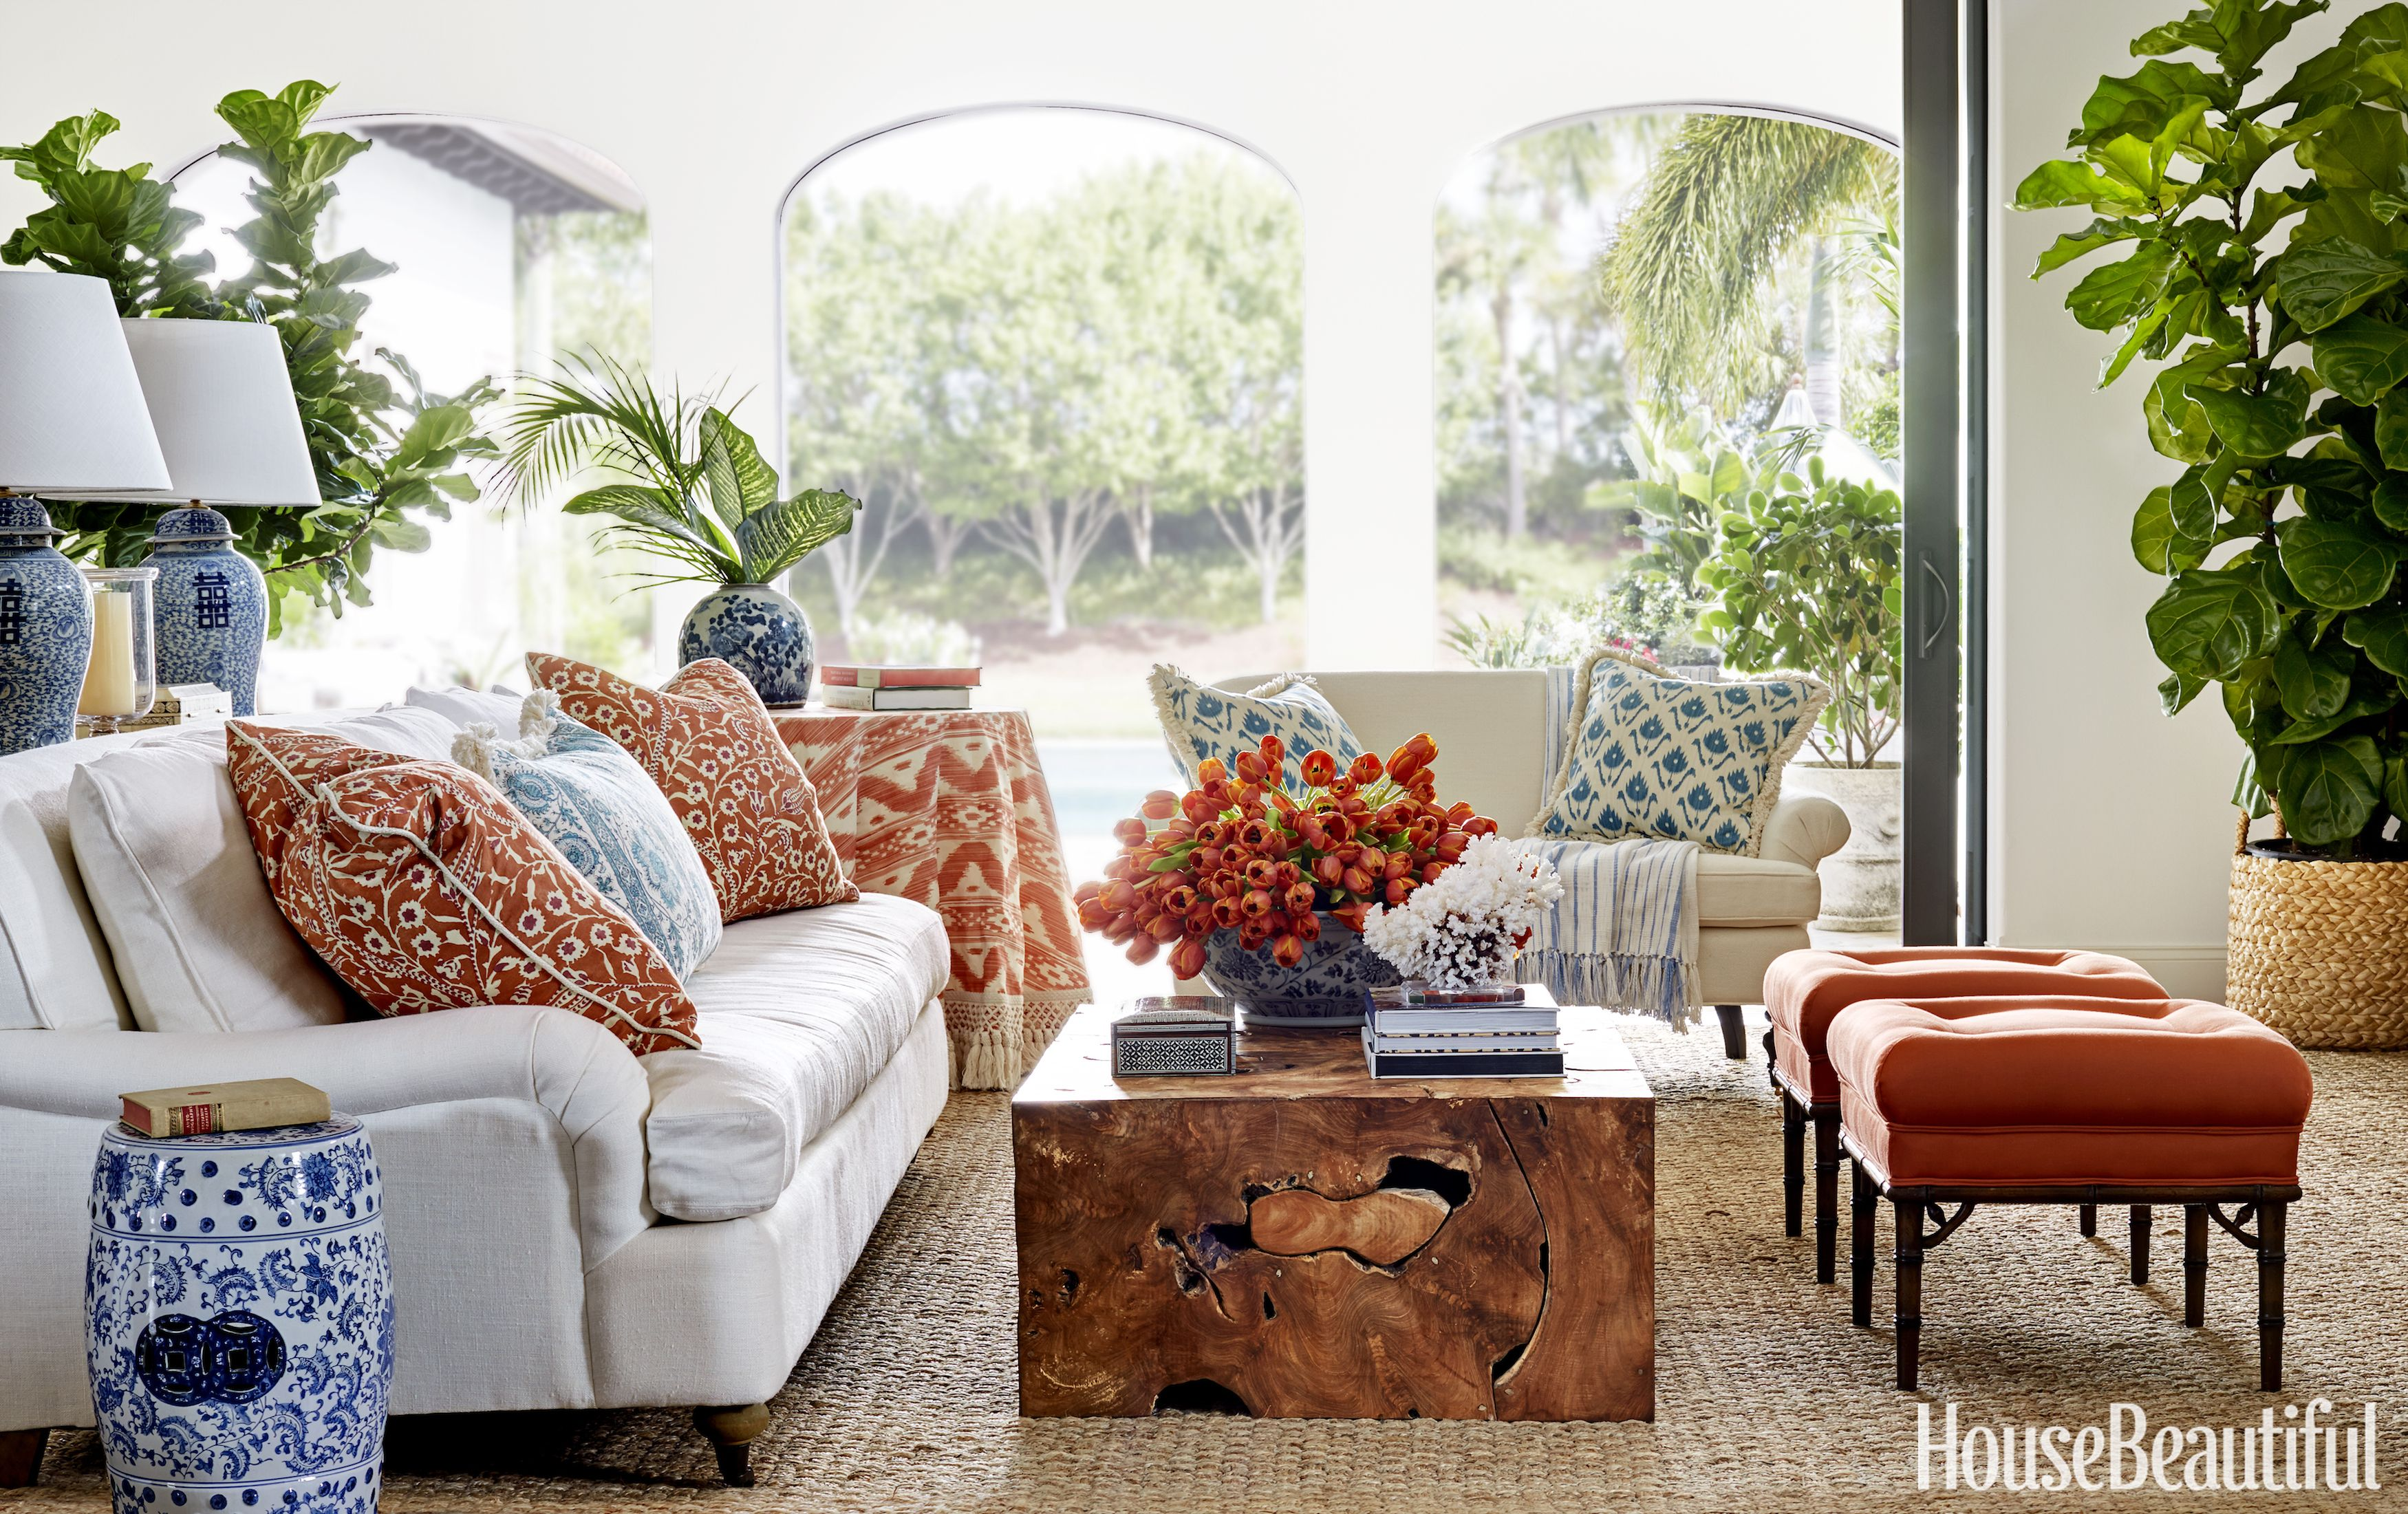 house beautiful living room ideas how to interior design a small 14 summer pictures of houses that are prettier than hotel rooms